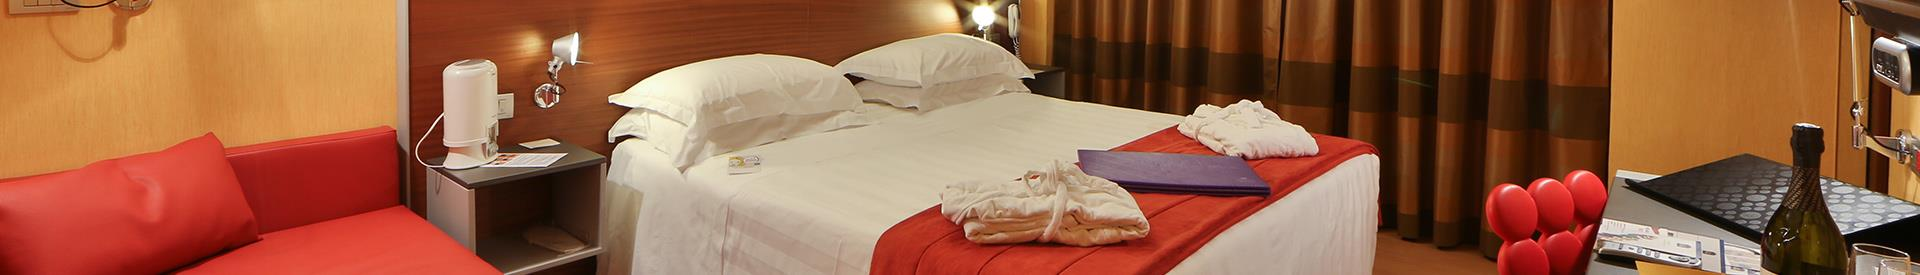 Looking for a hotel for your stay in TEMP_City (XX)? Book/reserve at the Best Western City Hotel